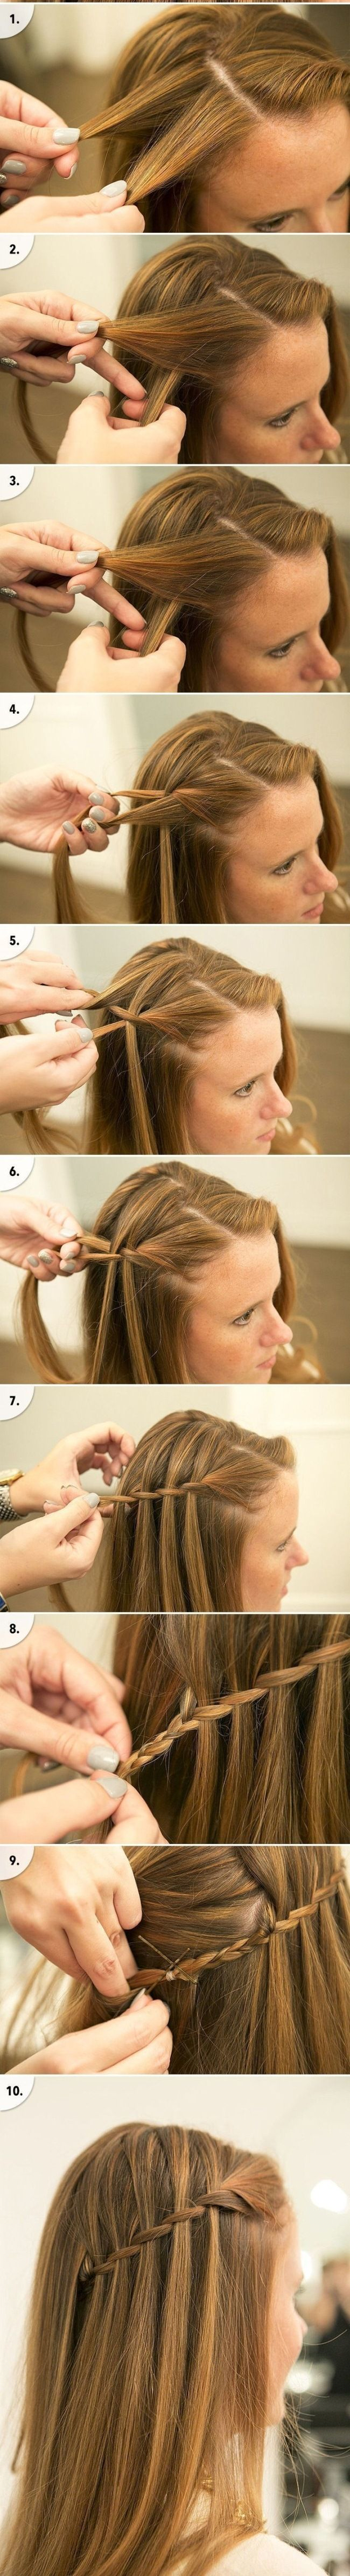 Fast Simple Formal Party Hairstyles For Long Hair DIY Ideas 2018